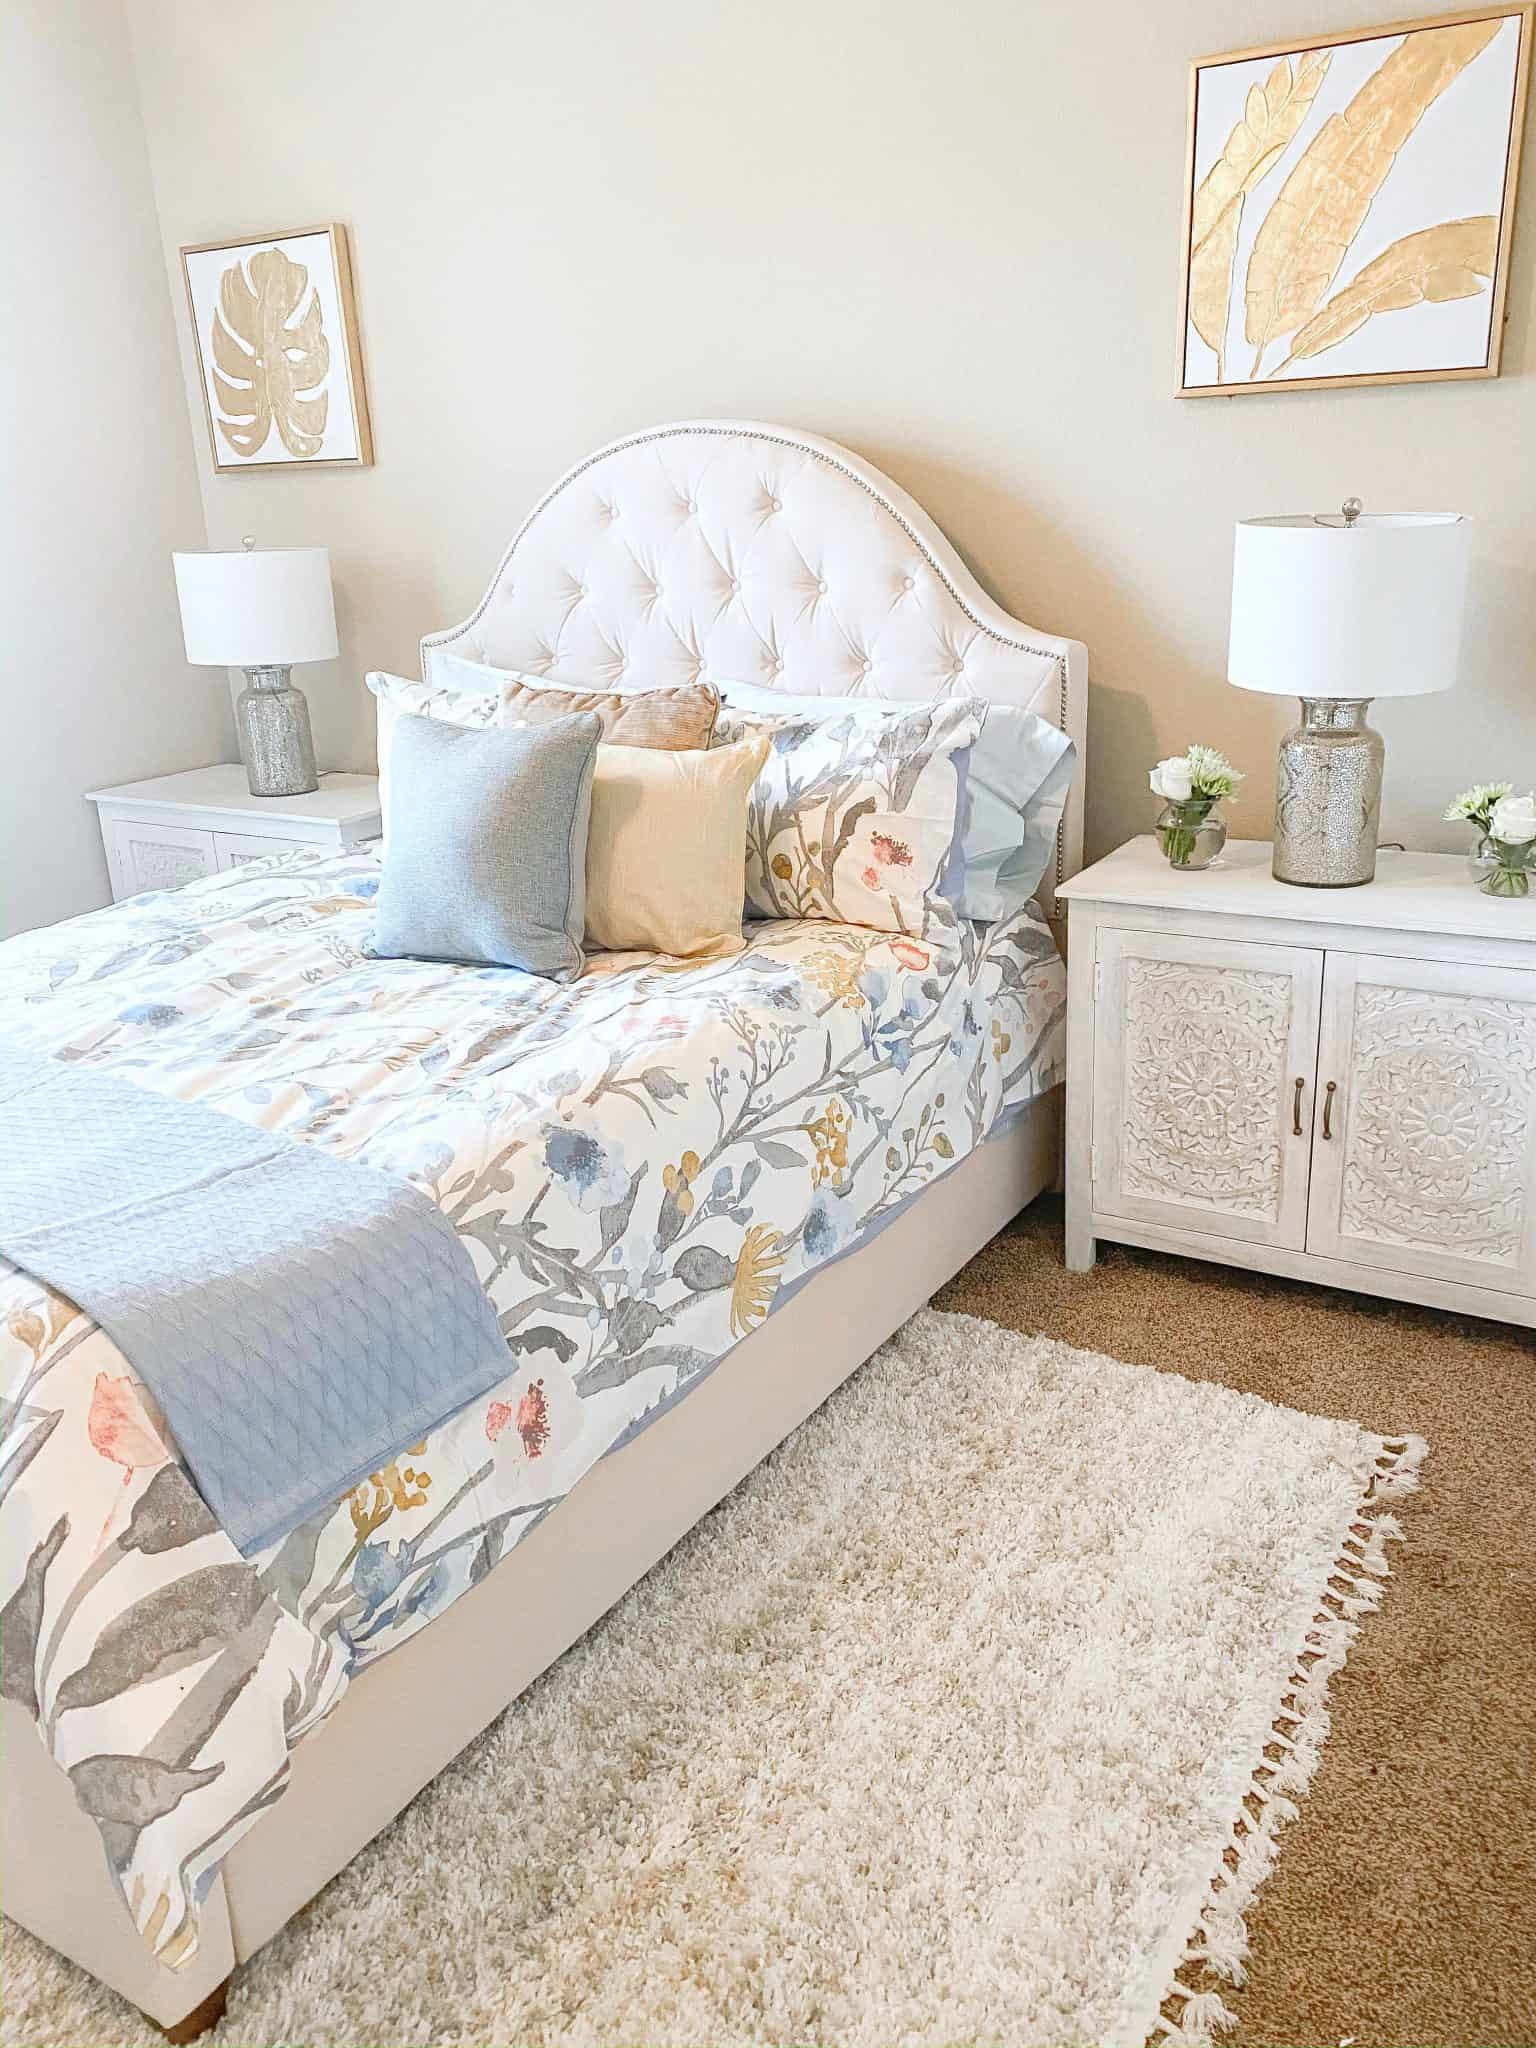 Guest Bedroom Decor Ideas by popular Dallas lifestyle blog, Glamorous Versatility: image of a guest bedroom decorated with a Home Depot Hover Image to Zoom Bradwick Ballet Beige Upholstered Queen Bed with Tufted Curved Back and Nailhead Detail, Home Depot Chennai White Wash Nightstand, Home Depot Chennai 3-Drawer White Wash Dresser, Home Depot Purcell 3-Piece Washed Denim Botanical Full/Queen Duvet Cover Set, Home Depot LaCrosse Medium Warmth White Queen Down Comforter, Home Depot Down Surround Jumbo Pillow, Home Depot Cotton Bamboo Misty Blue Woven Throw Blanket, Home Depot, 600 Thread Count Supima Cotton Sateen 4-Piece Queen Sheet Set in Raindrop, Home Depot Emilia 24.5 in. Mercury Silver Trellis Pattern Glass Table Lamp, and Home Depot Brooke Contemporary Ivory 8 ft. x 11 ft. Shag Area Rug.